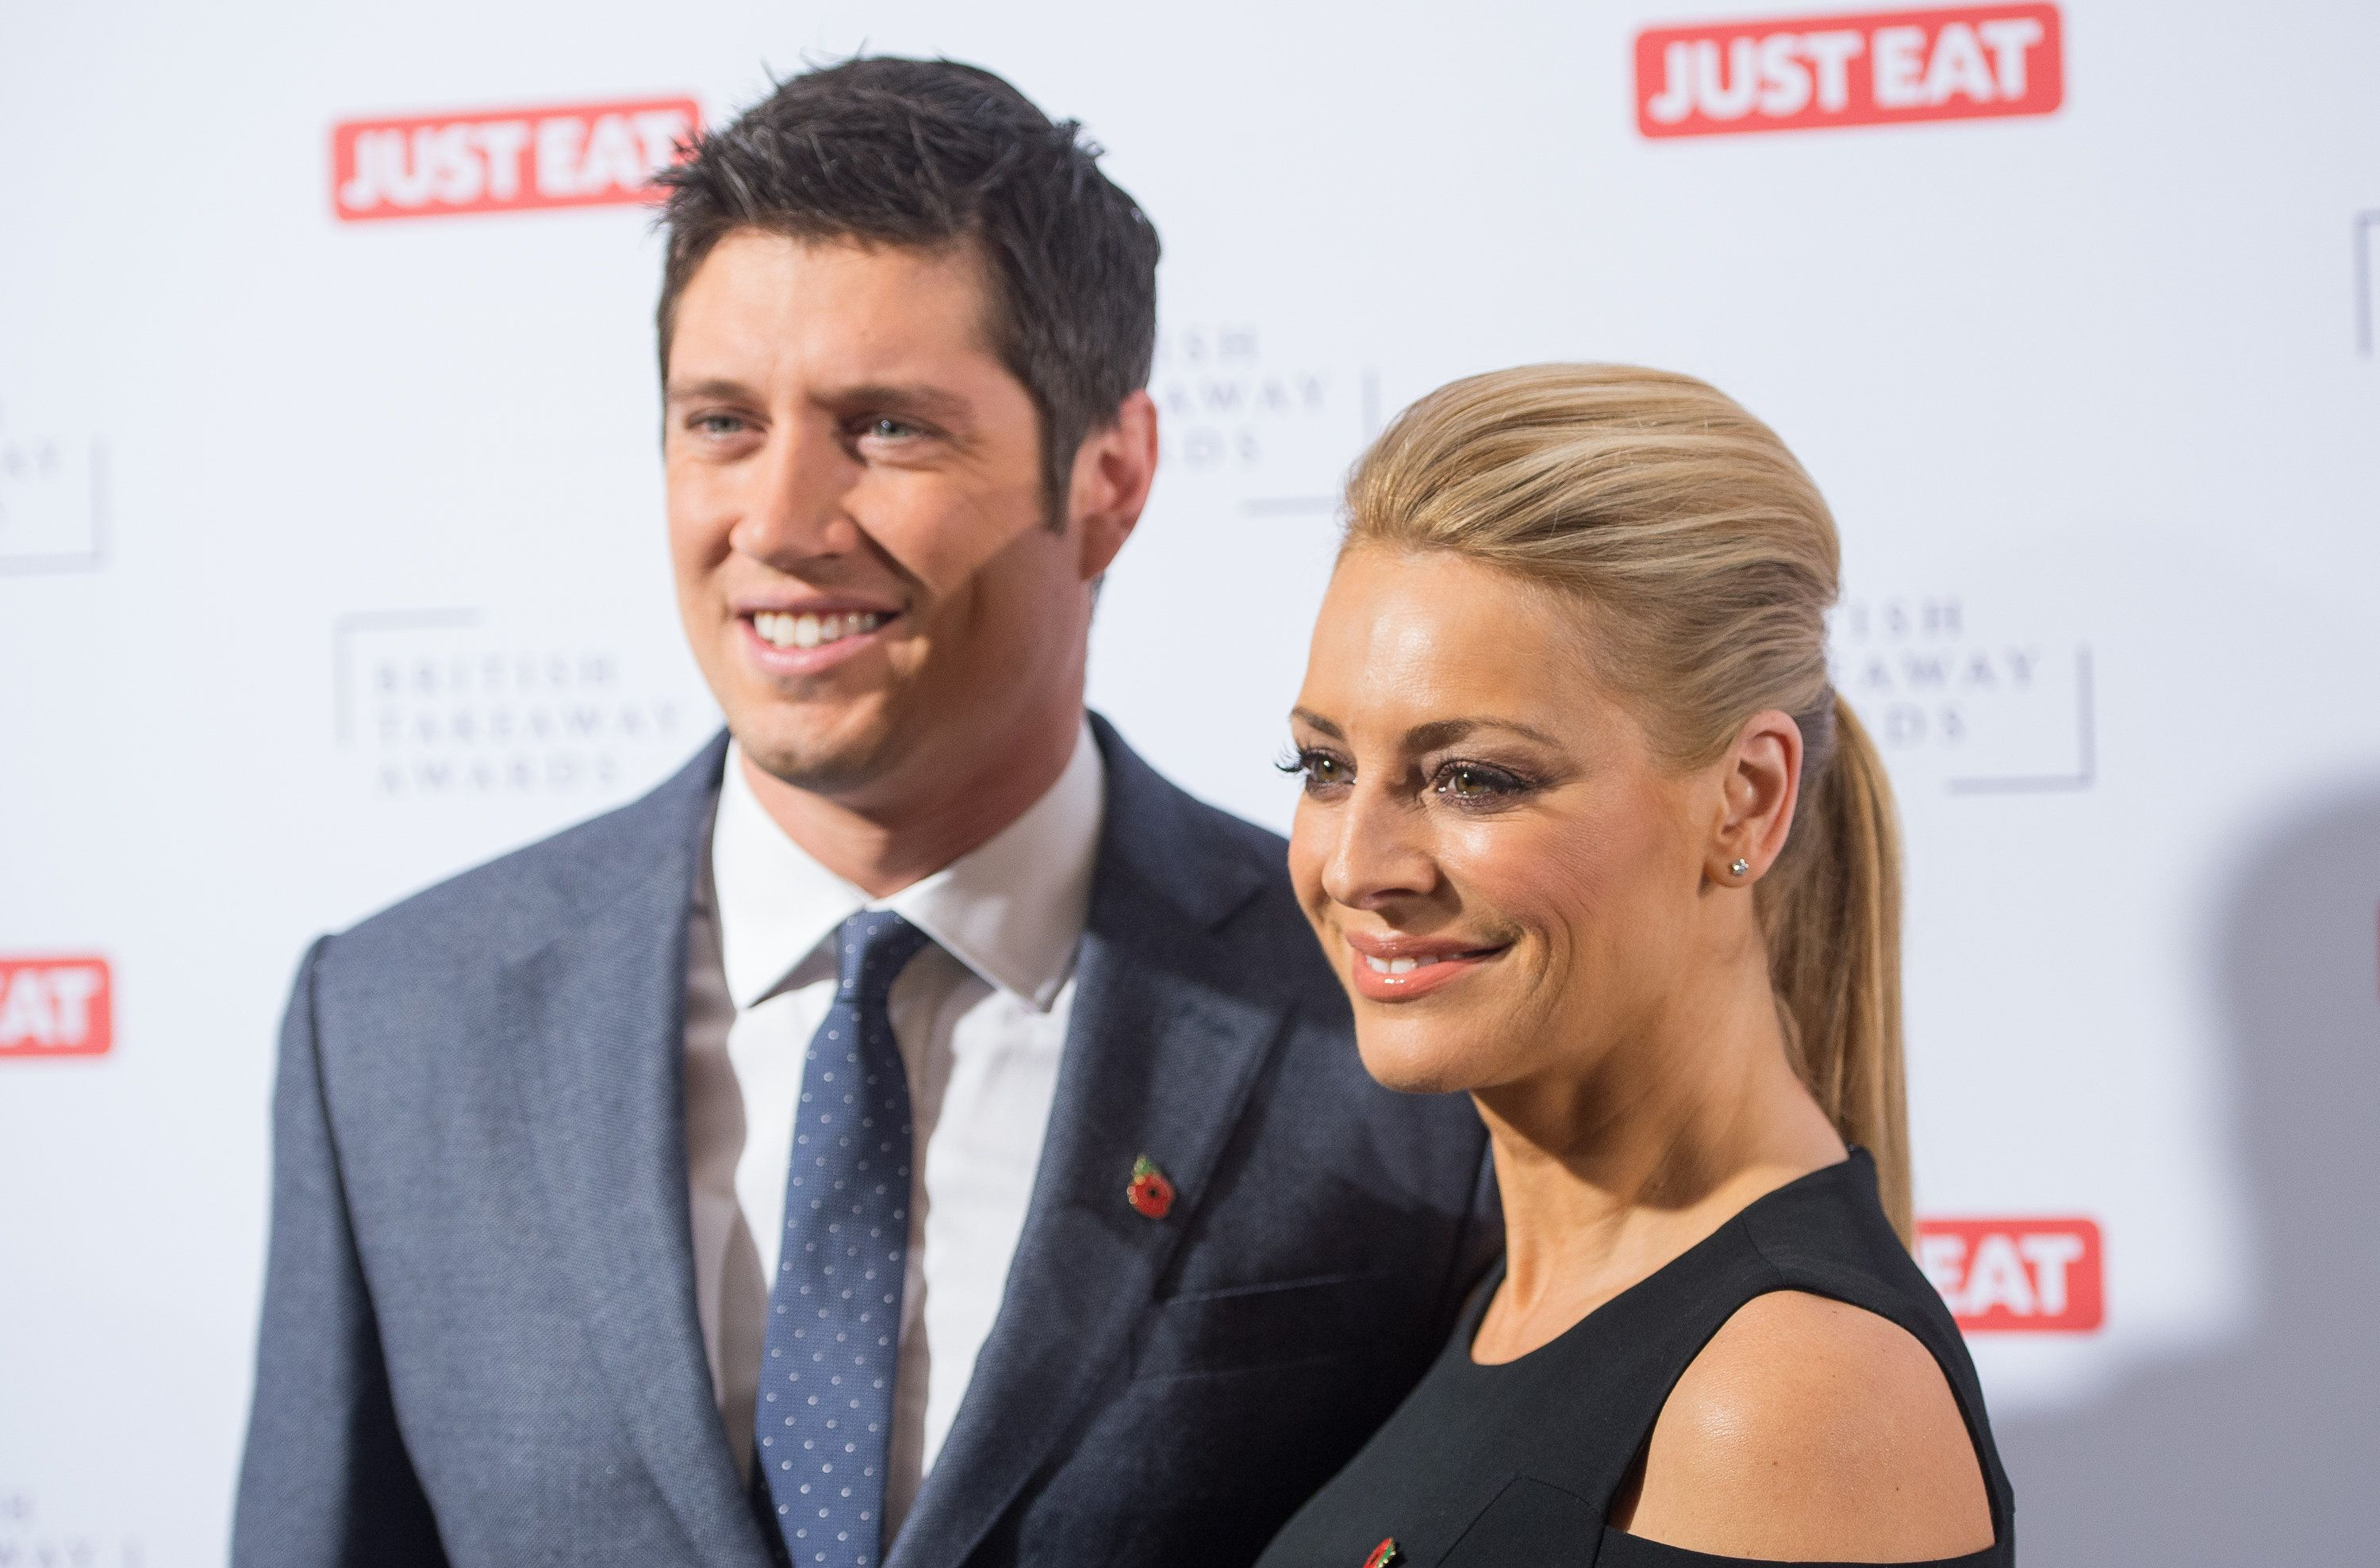 Vernon Kay with his wife Tess Daly, whom he says is completely aware of his recent communications with...